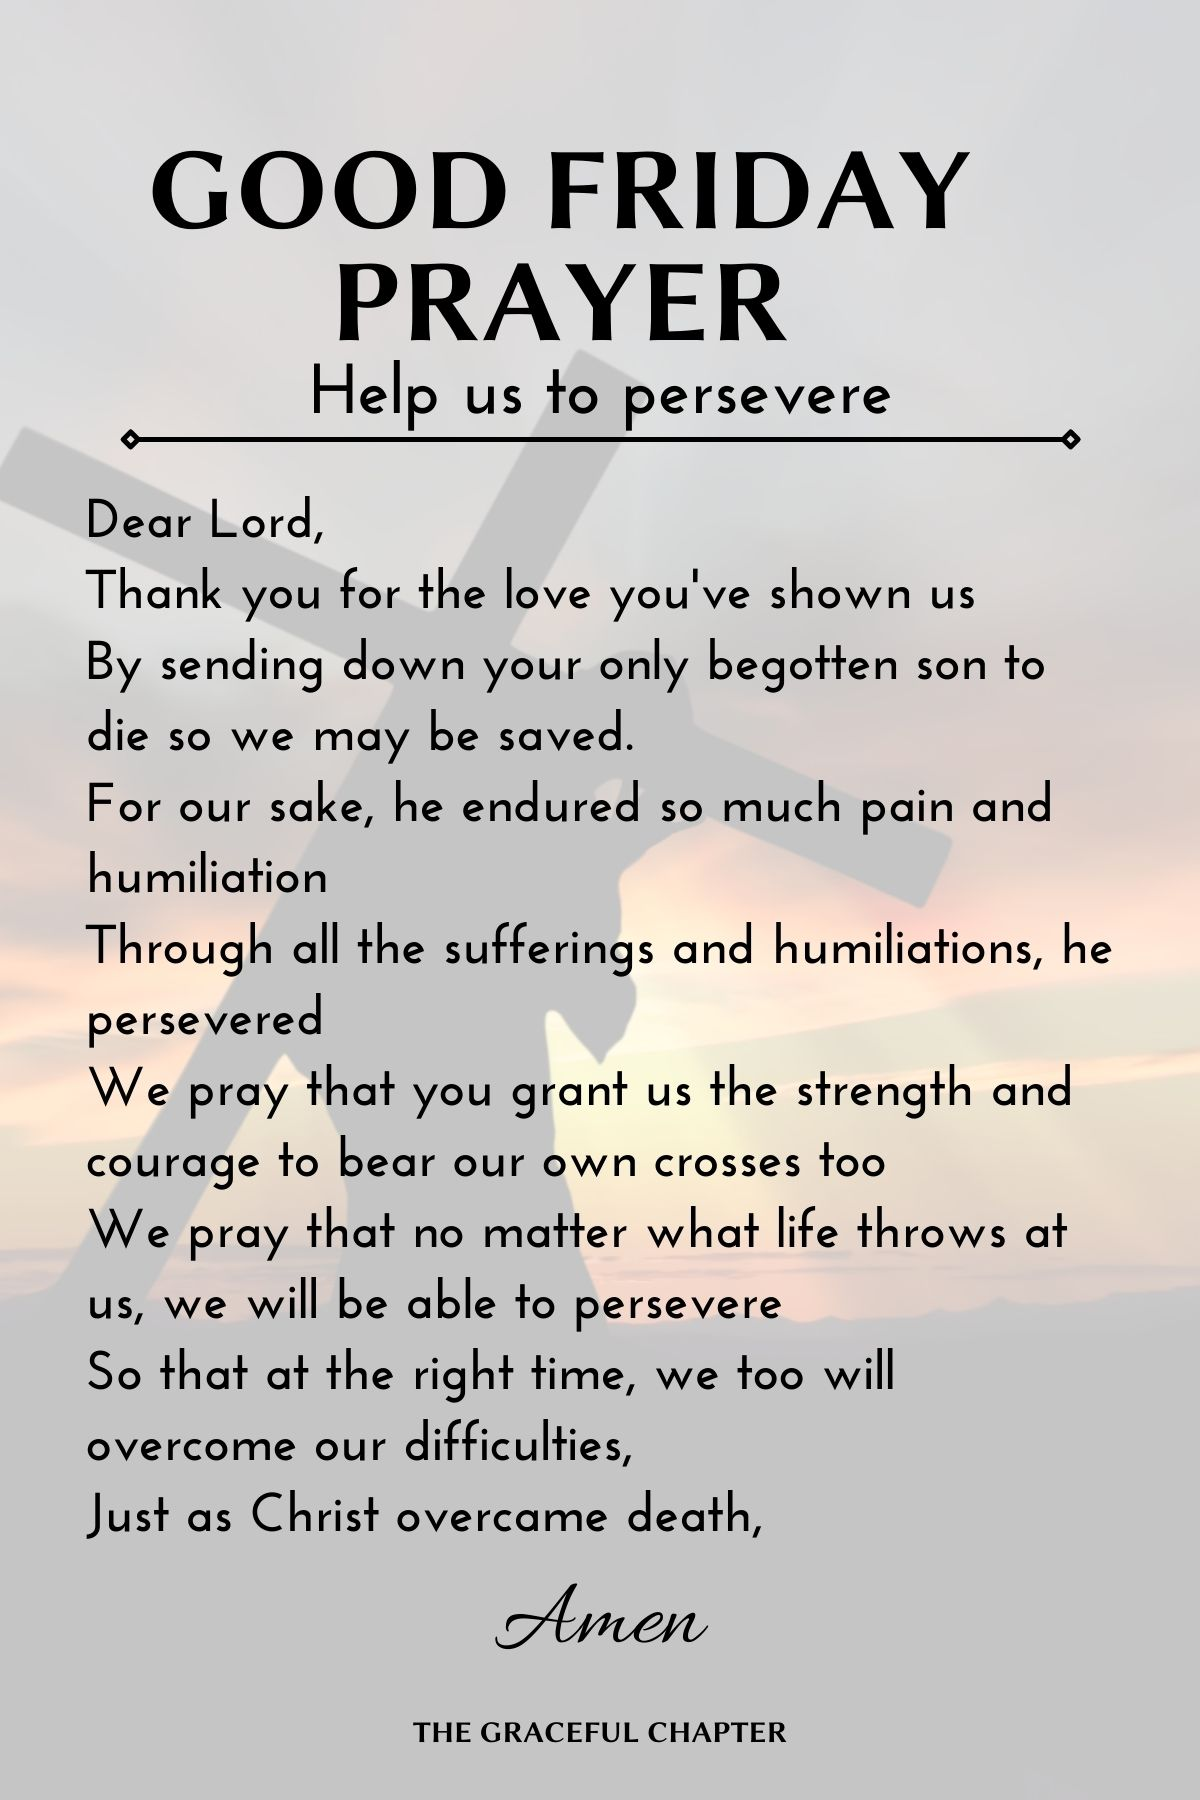 Good Friday Prayer - Help us to persevere